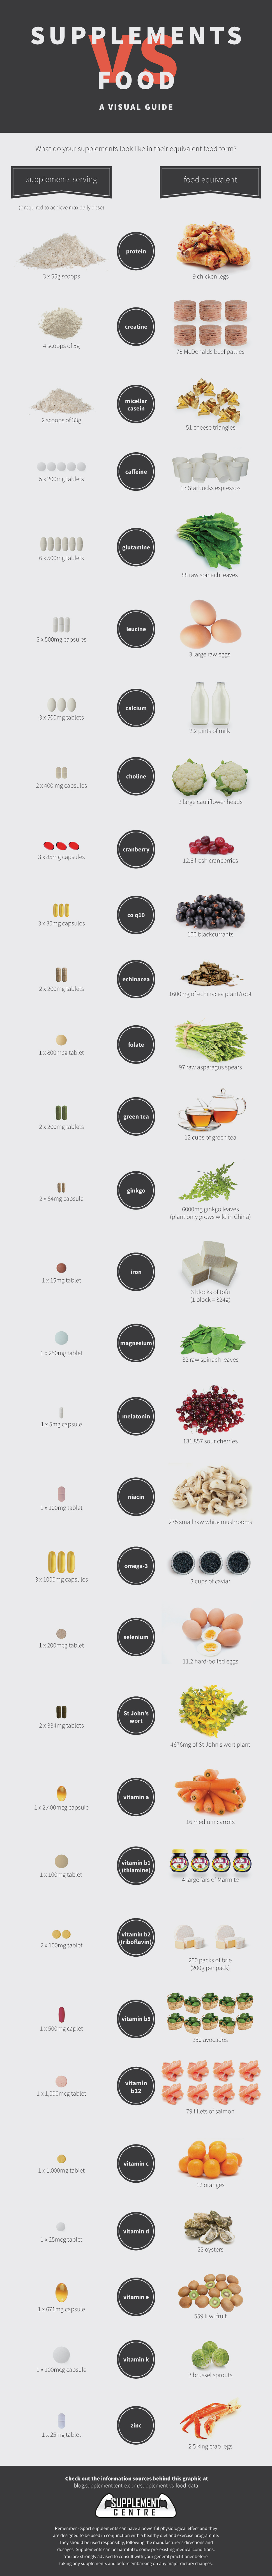 Supplements Vs Food – A Visual Guide (Infographic)